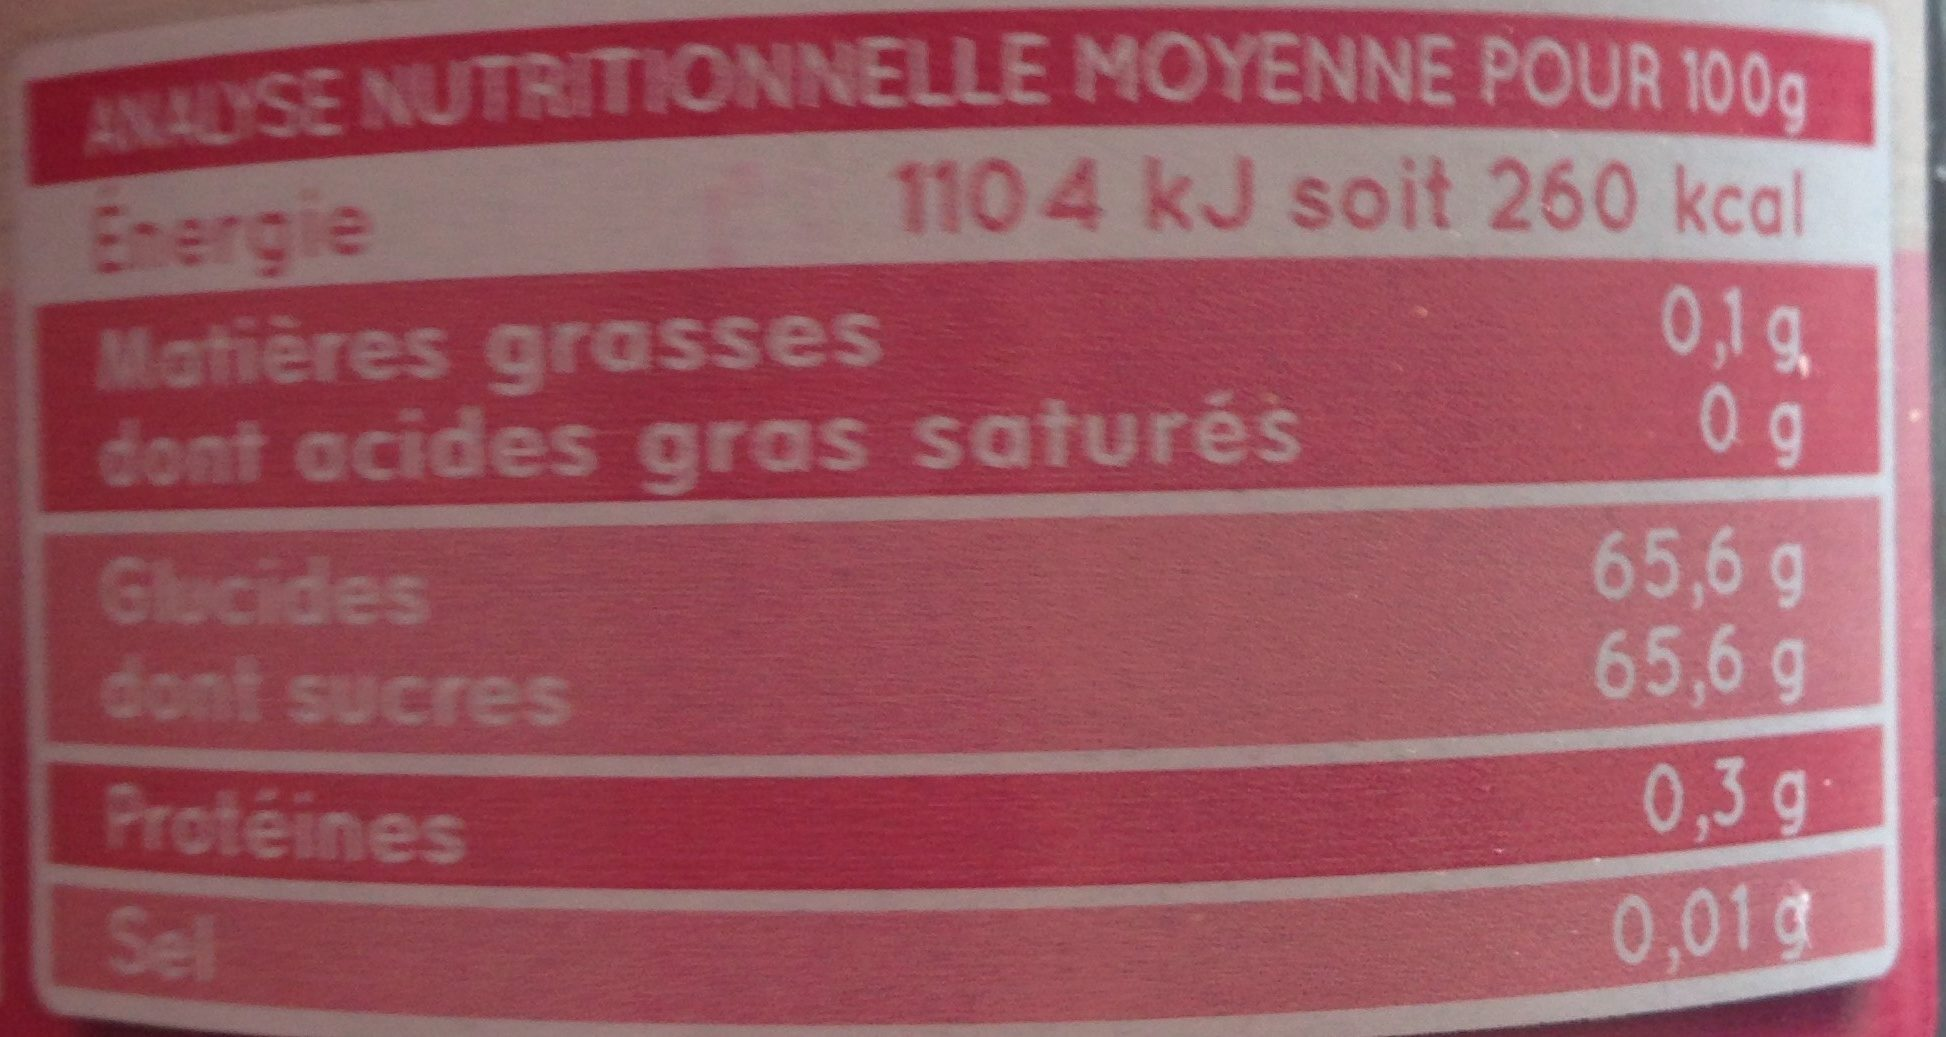 Gelée de Framboises - Nutrition facts